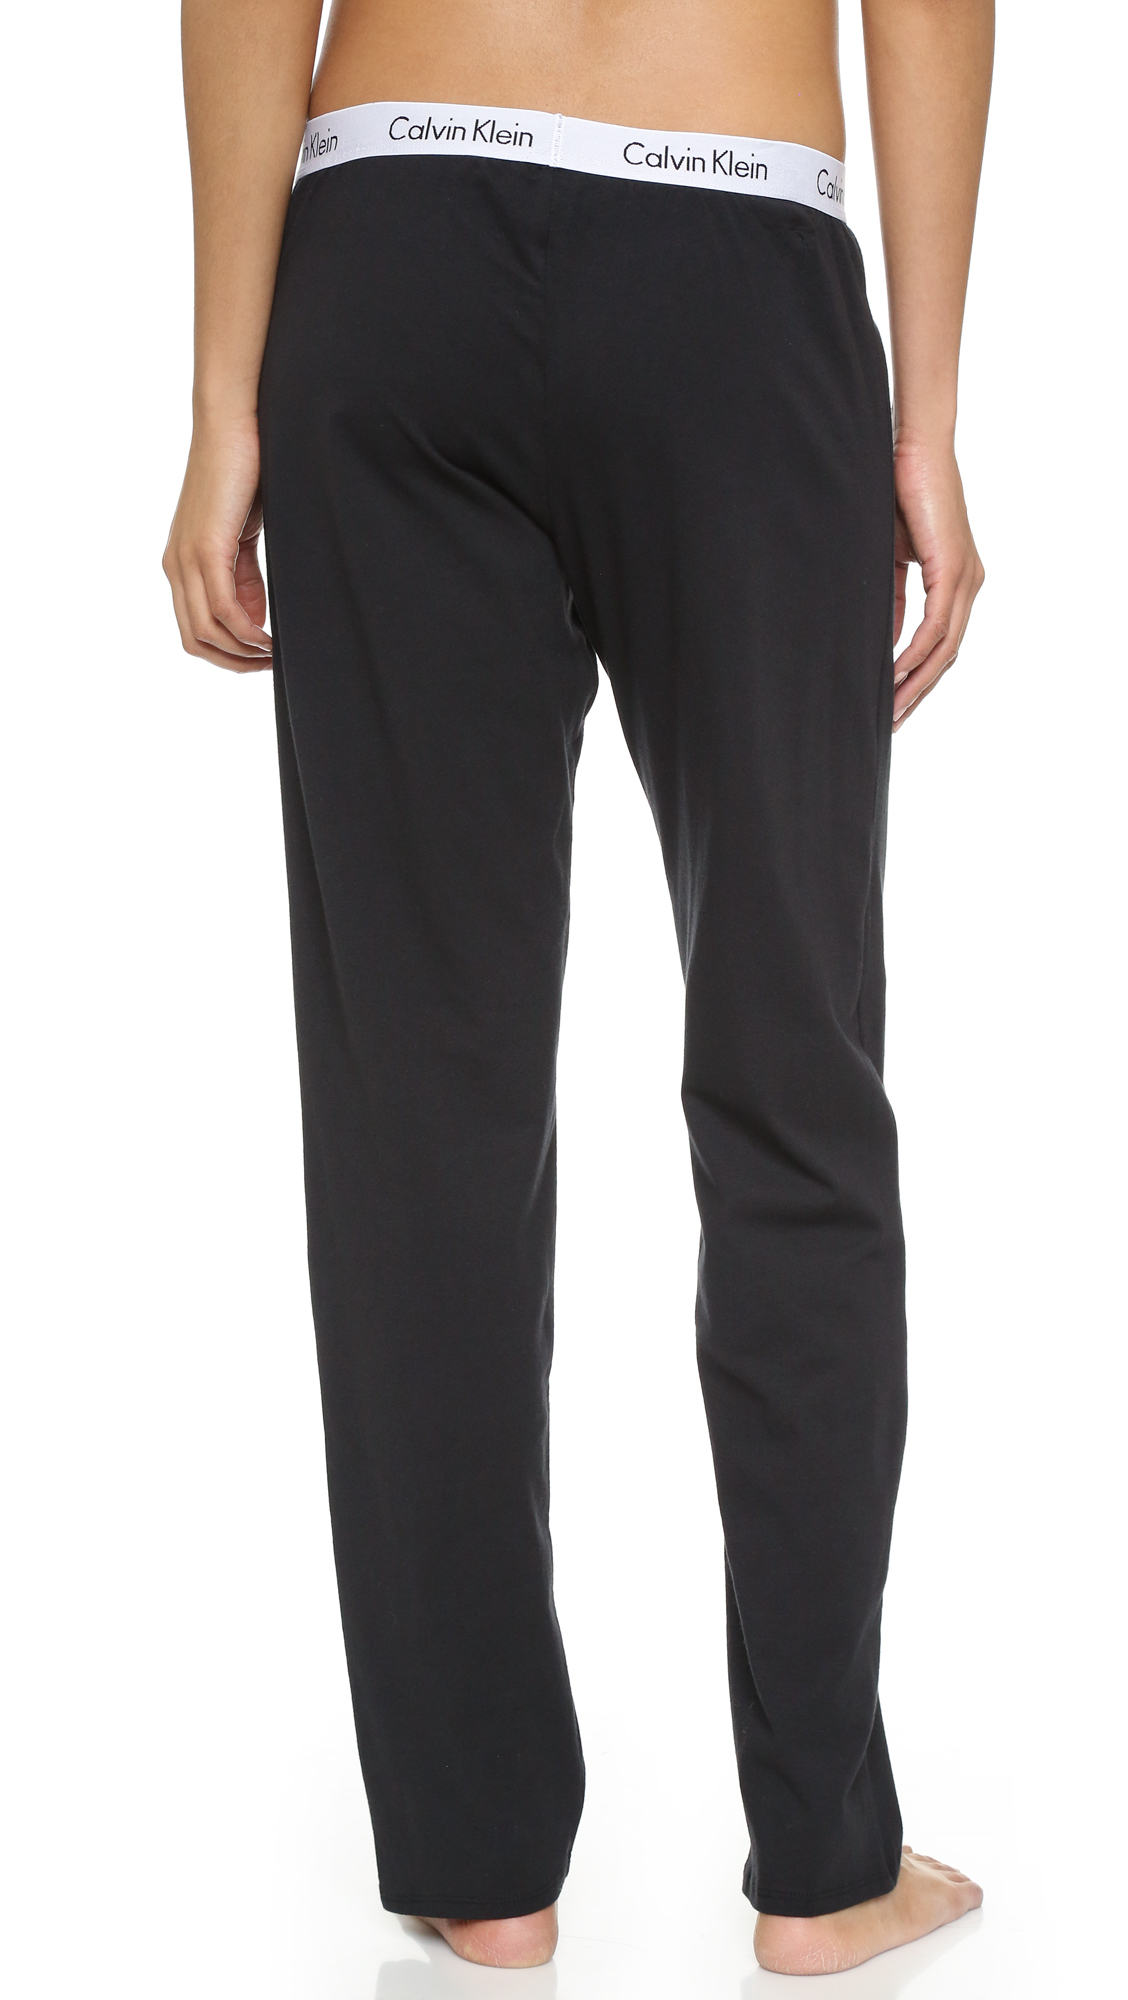 new styles for whole family wide varieties Logo Lounge Pants